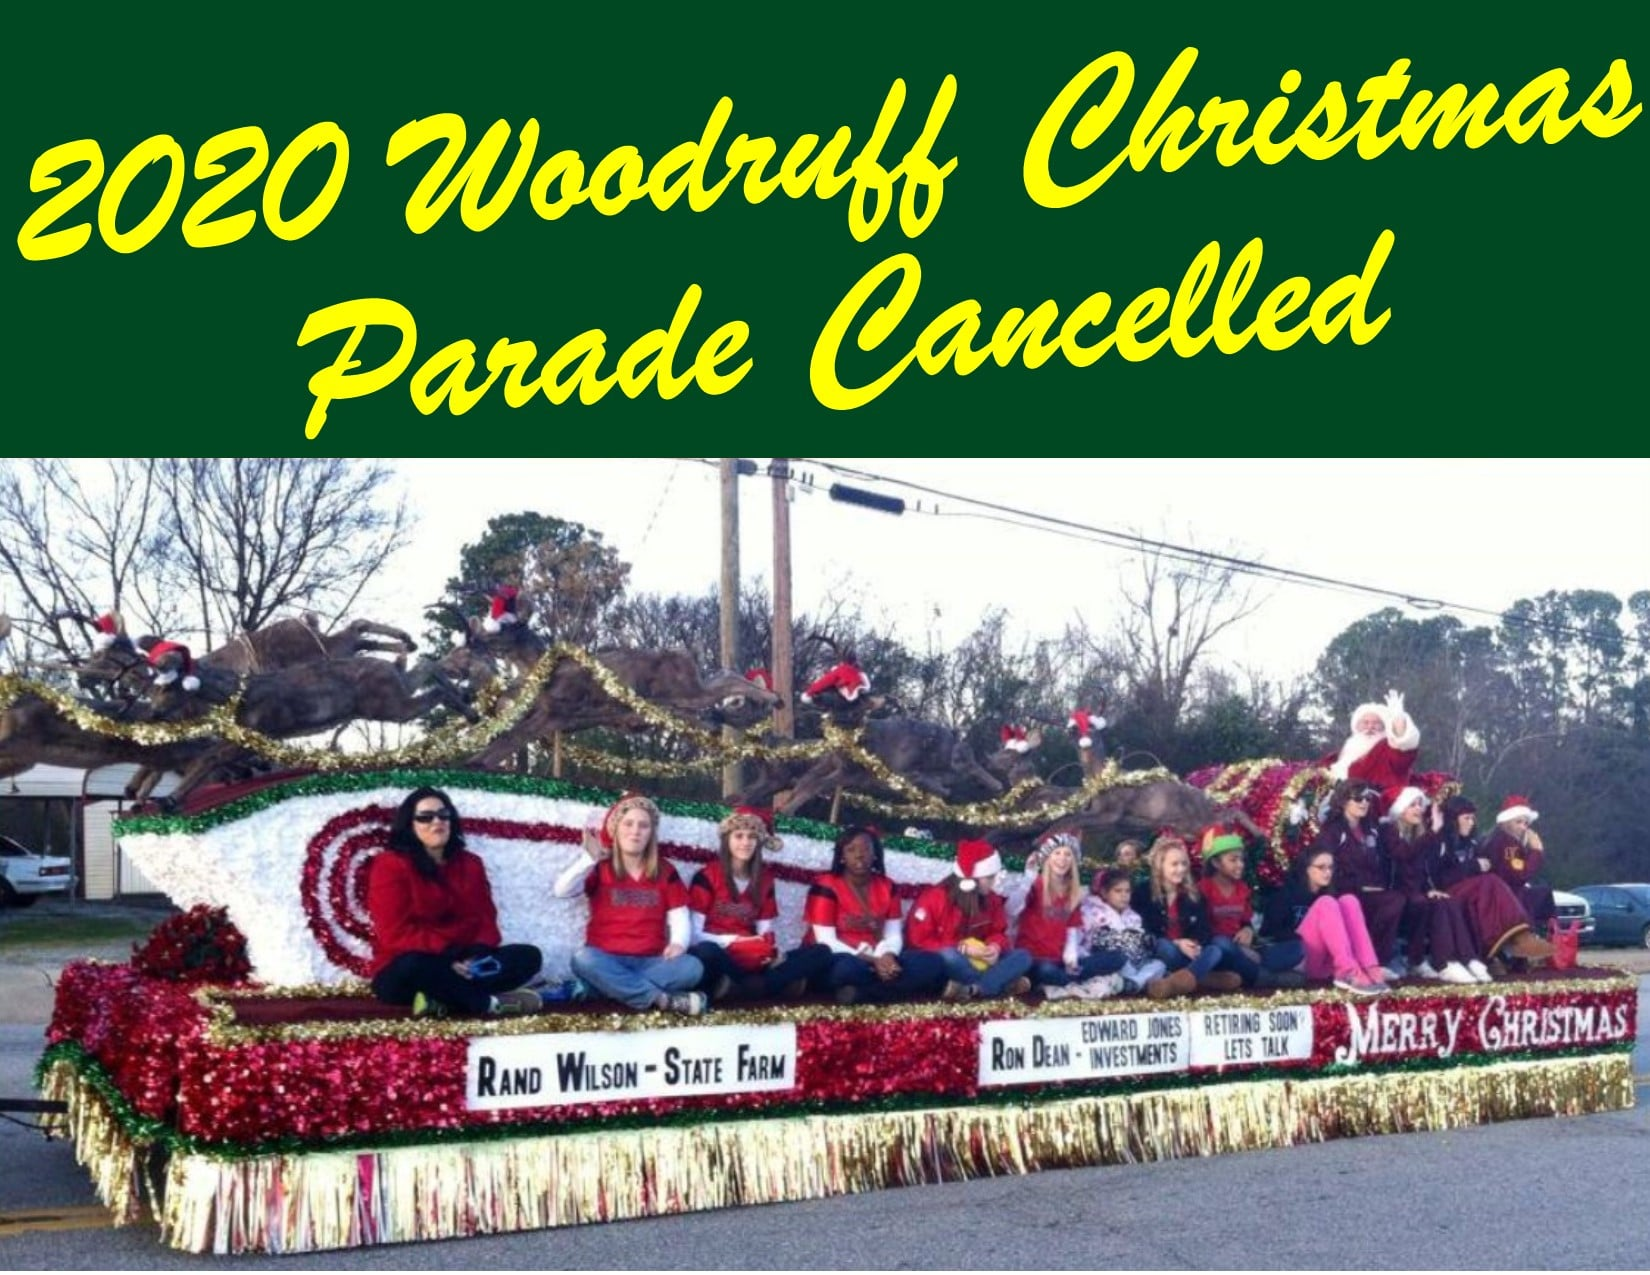 Woodruff Christmas Parade Called Off Per COVID Restrictions